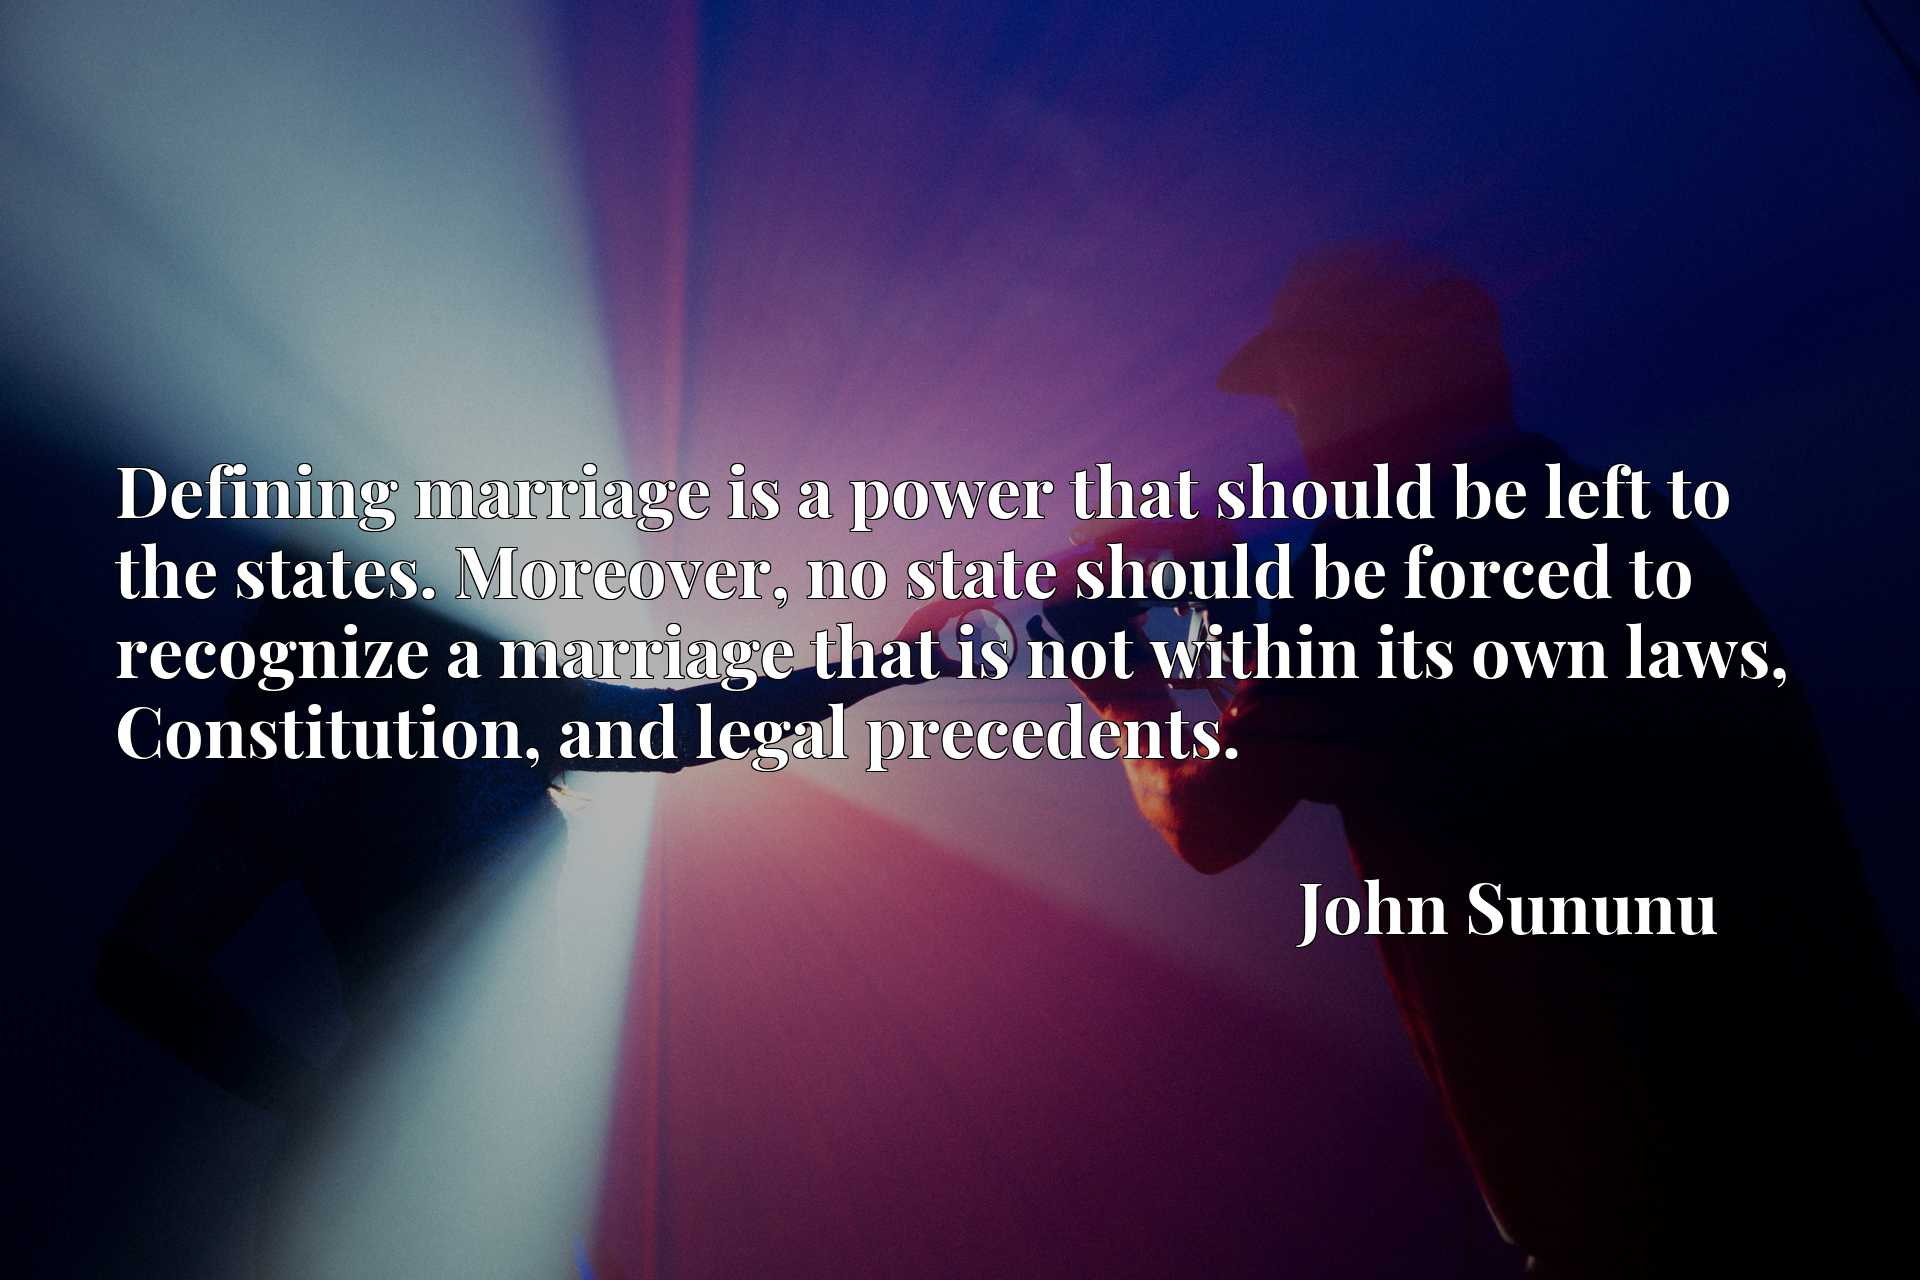 Quote Picture :Defining marriage is a power that should be left to the states. Moreover, no state should be forced to recognize a marriage that is not within its own laws, Constitution, and legal precedents.